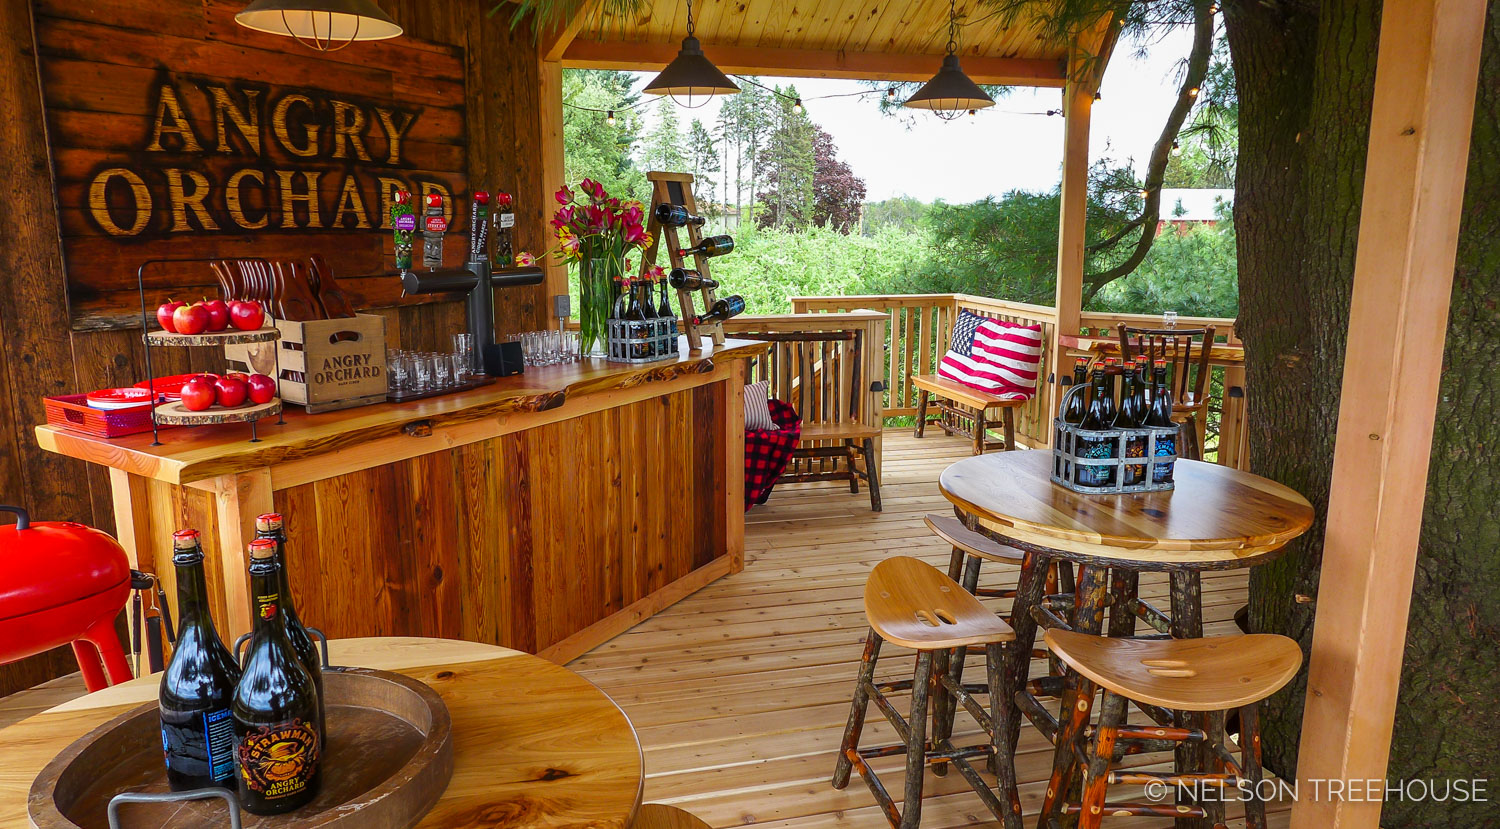 Angry Orchard Tasting Room Treehouse - Walden, NY